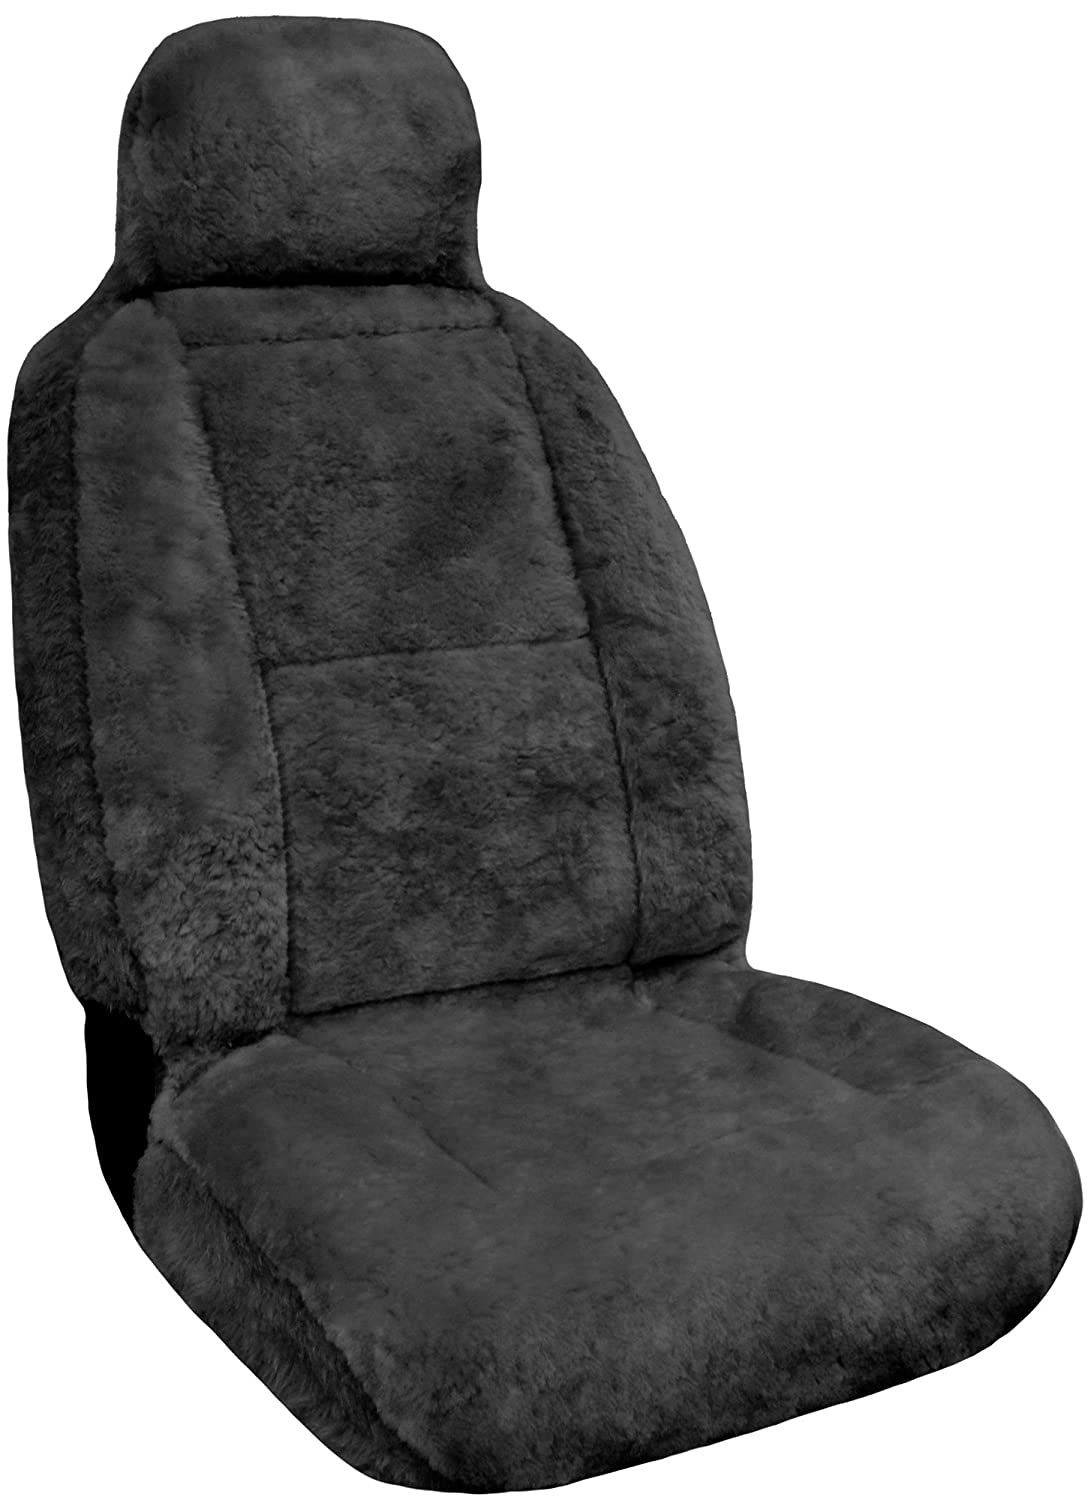 Eurow Luxury Sheepskin Seat Cover XL Design Comfortable Premium Pelt - Gray Eurow & O' Reilly Corp. 122705